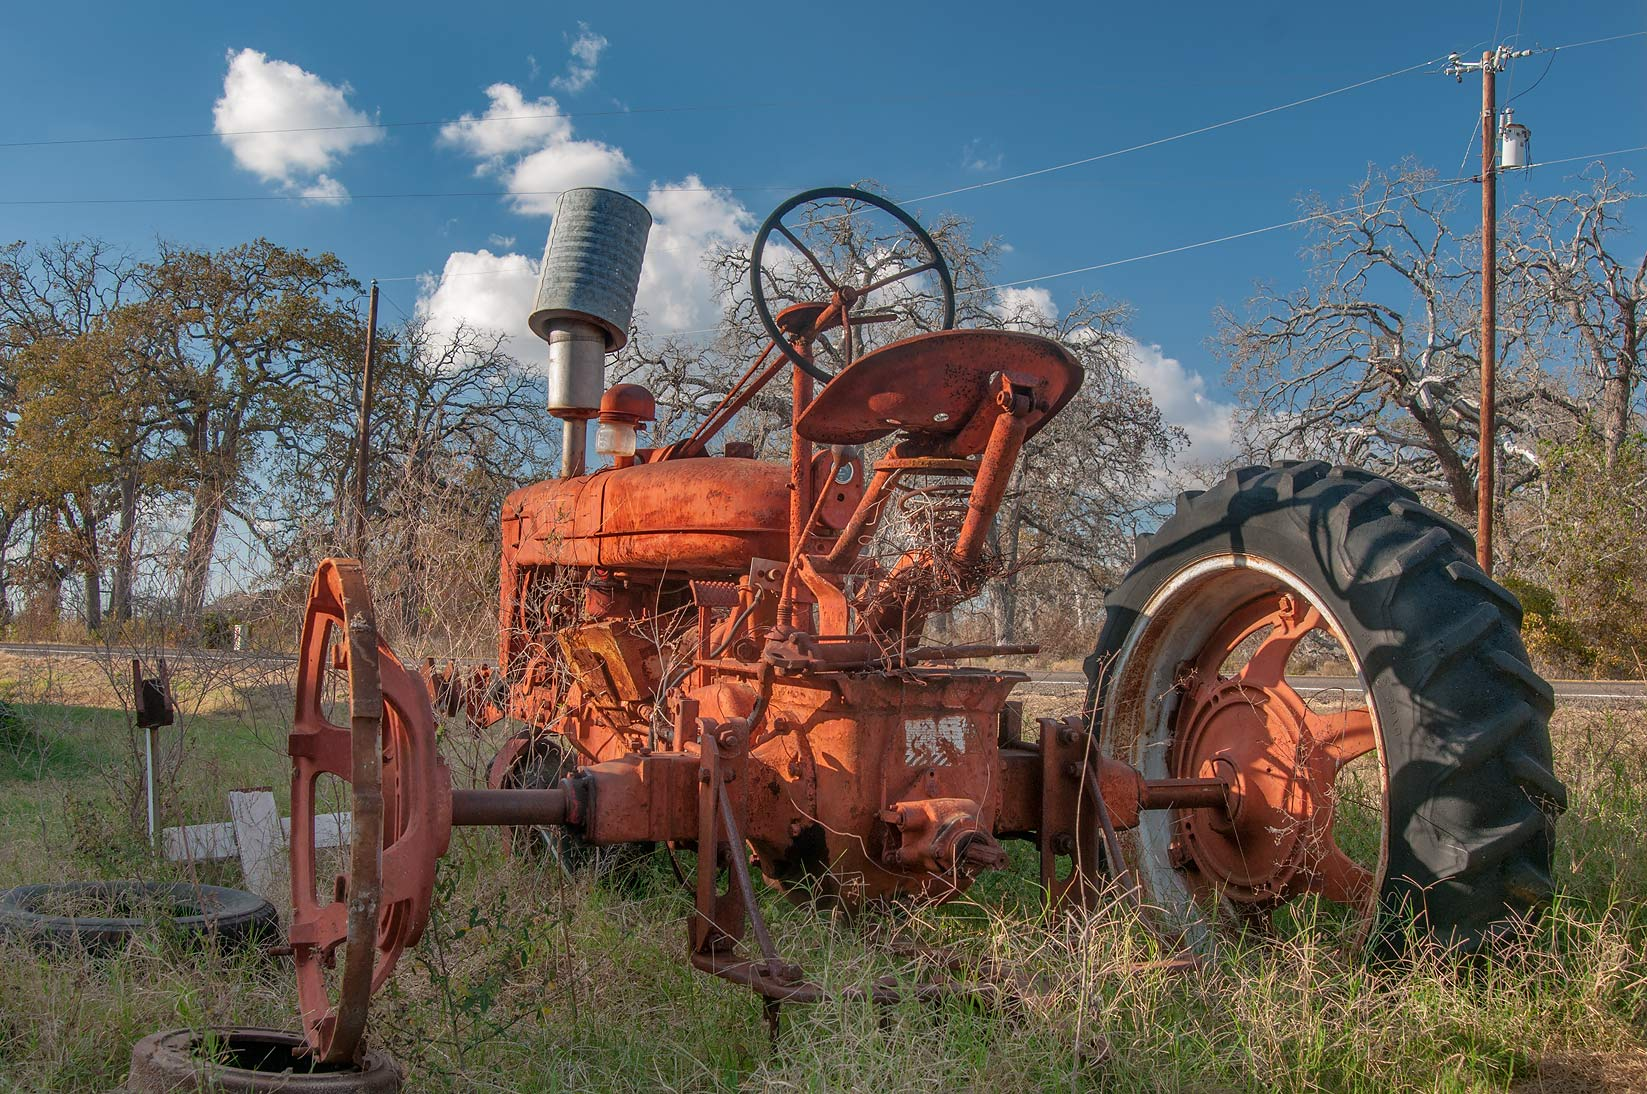 Old tractor in Sharp, view from Rd. FM 487. Texas